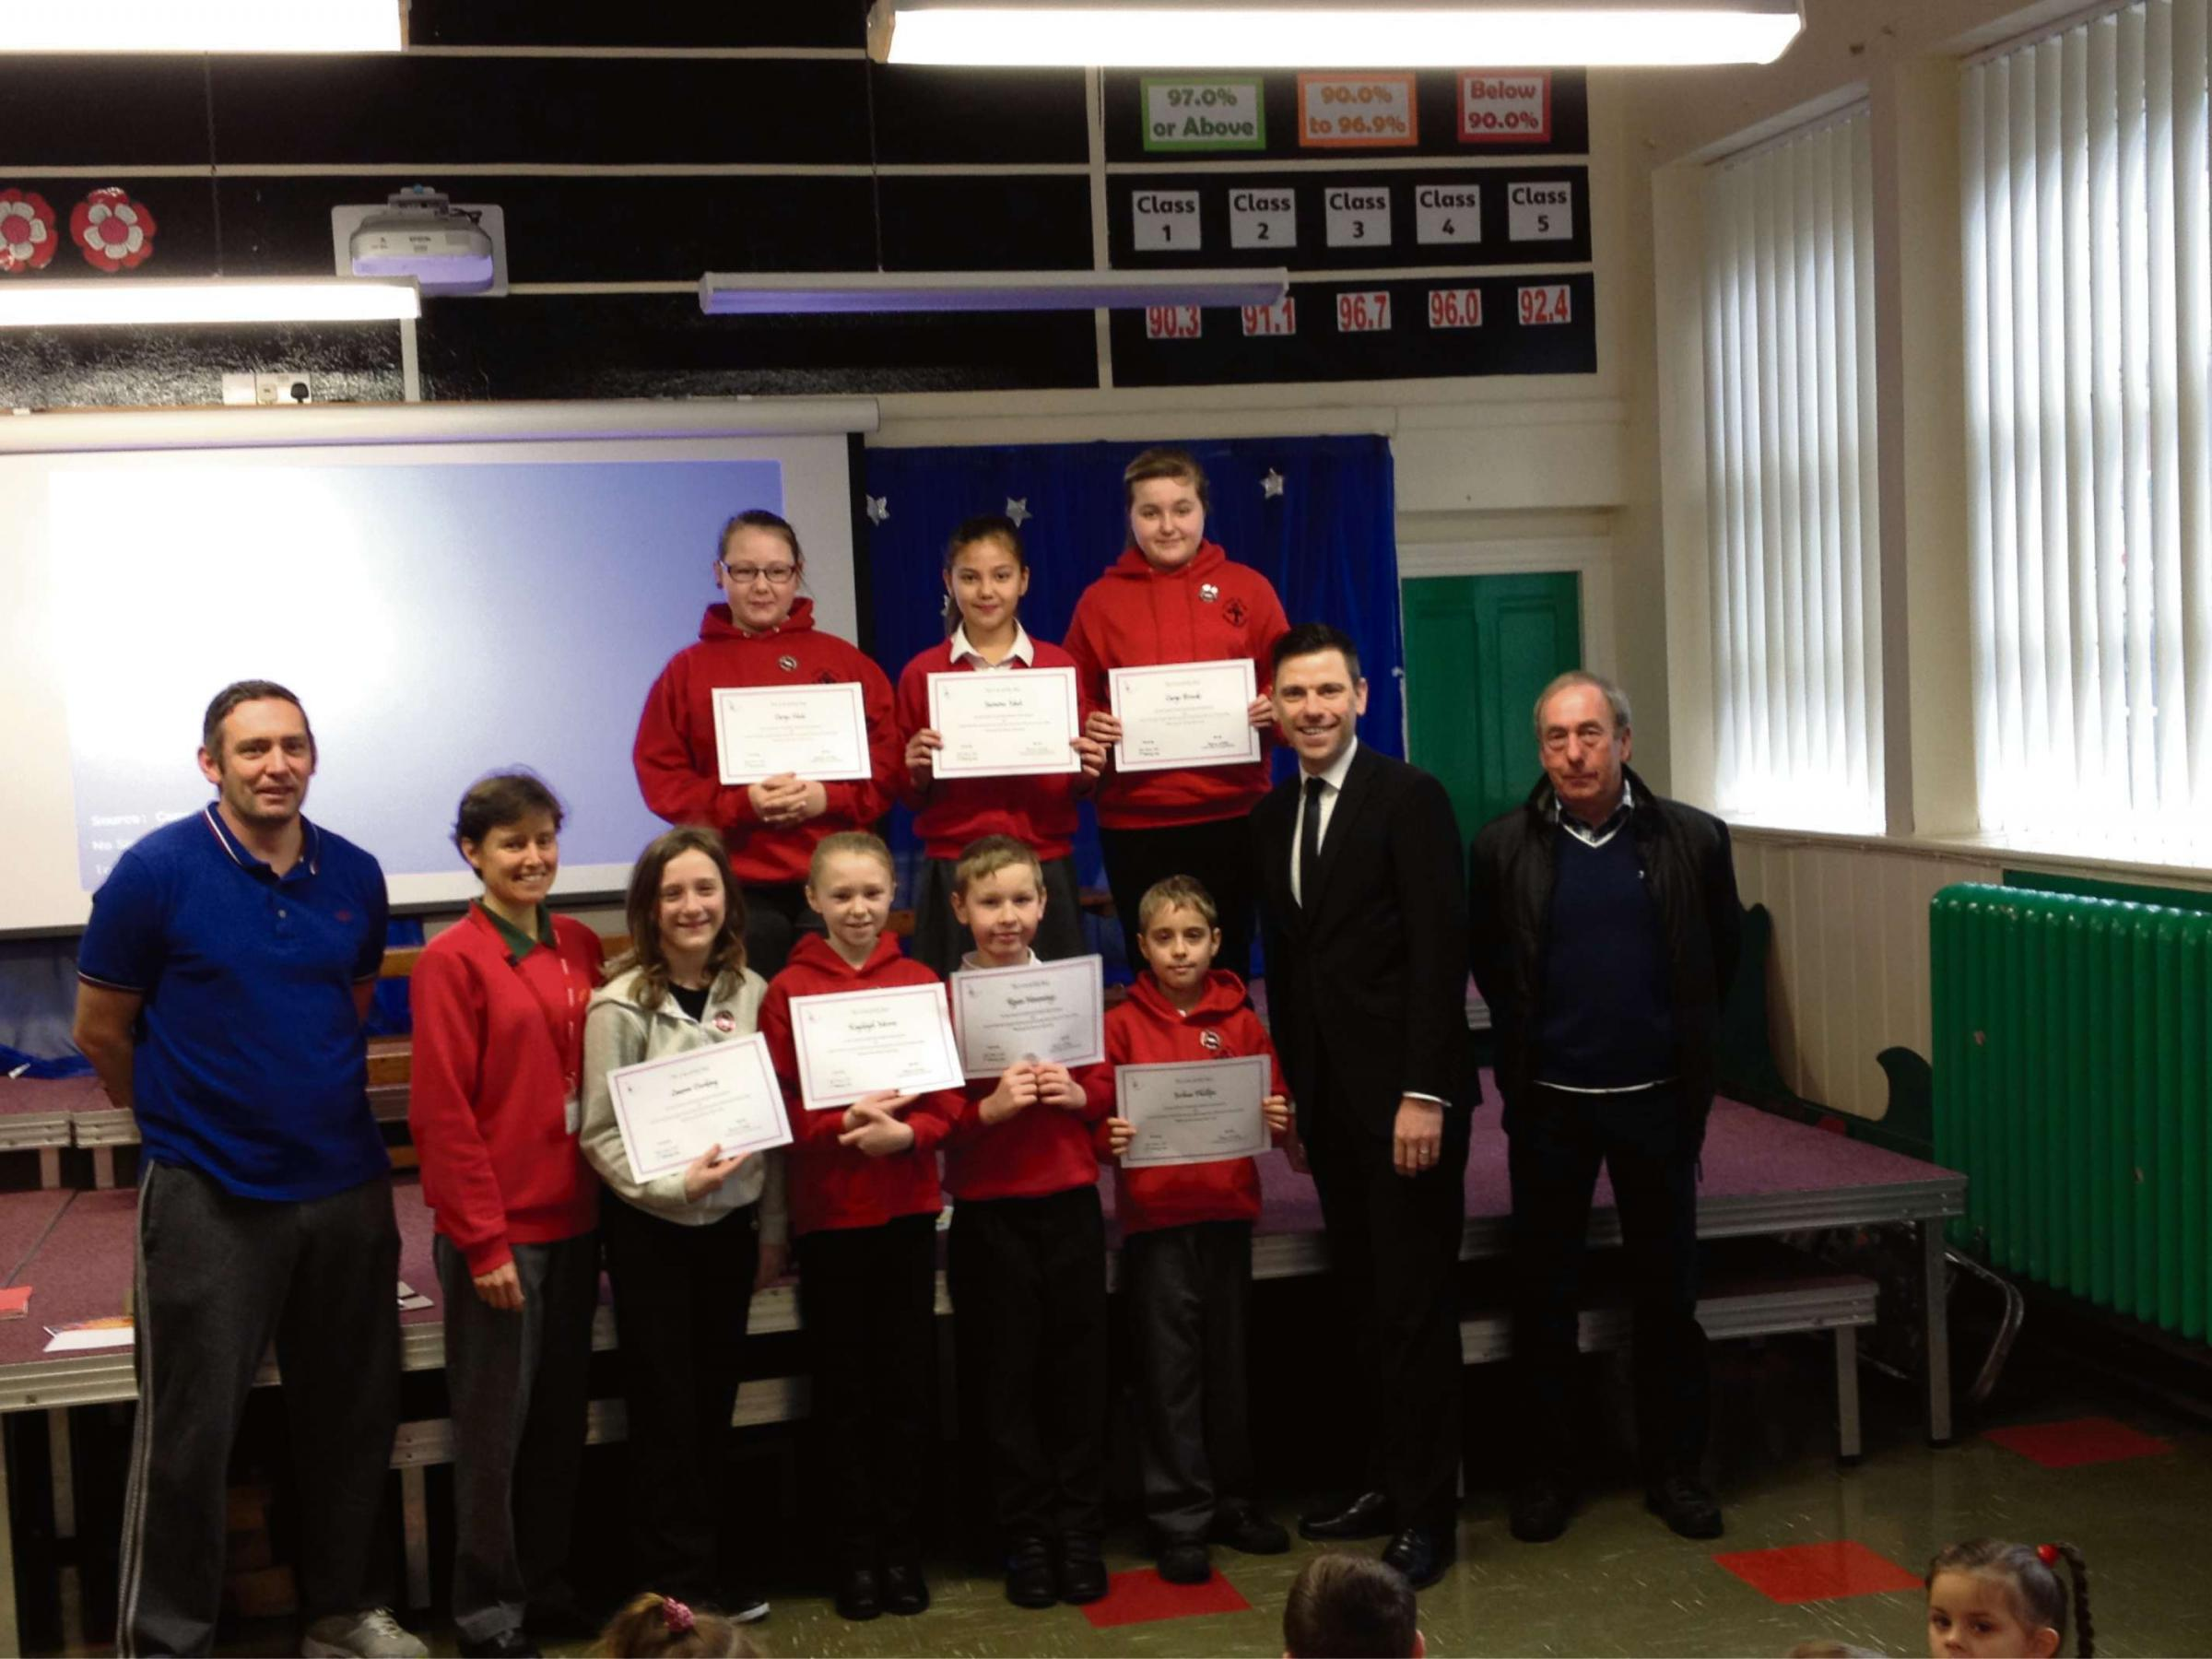 SAVERS: Islwyn MP Chris Evans with pupils at Fleur-de-Lys Primary School.